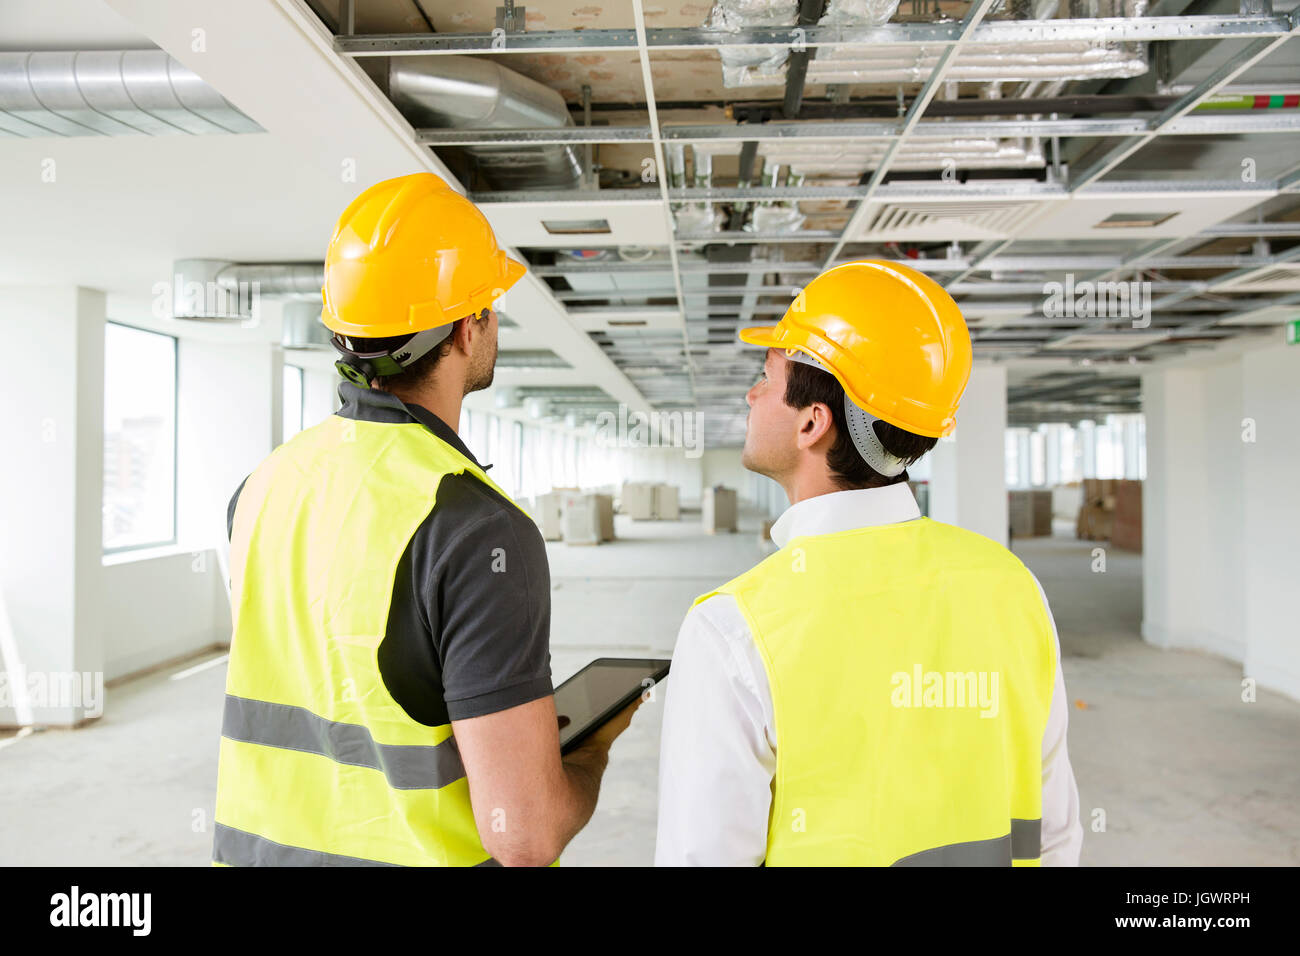 Two men wearing hi vis vest, having discussion in newly constructed office space, rear view - Stock Image